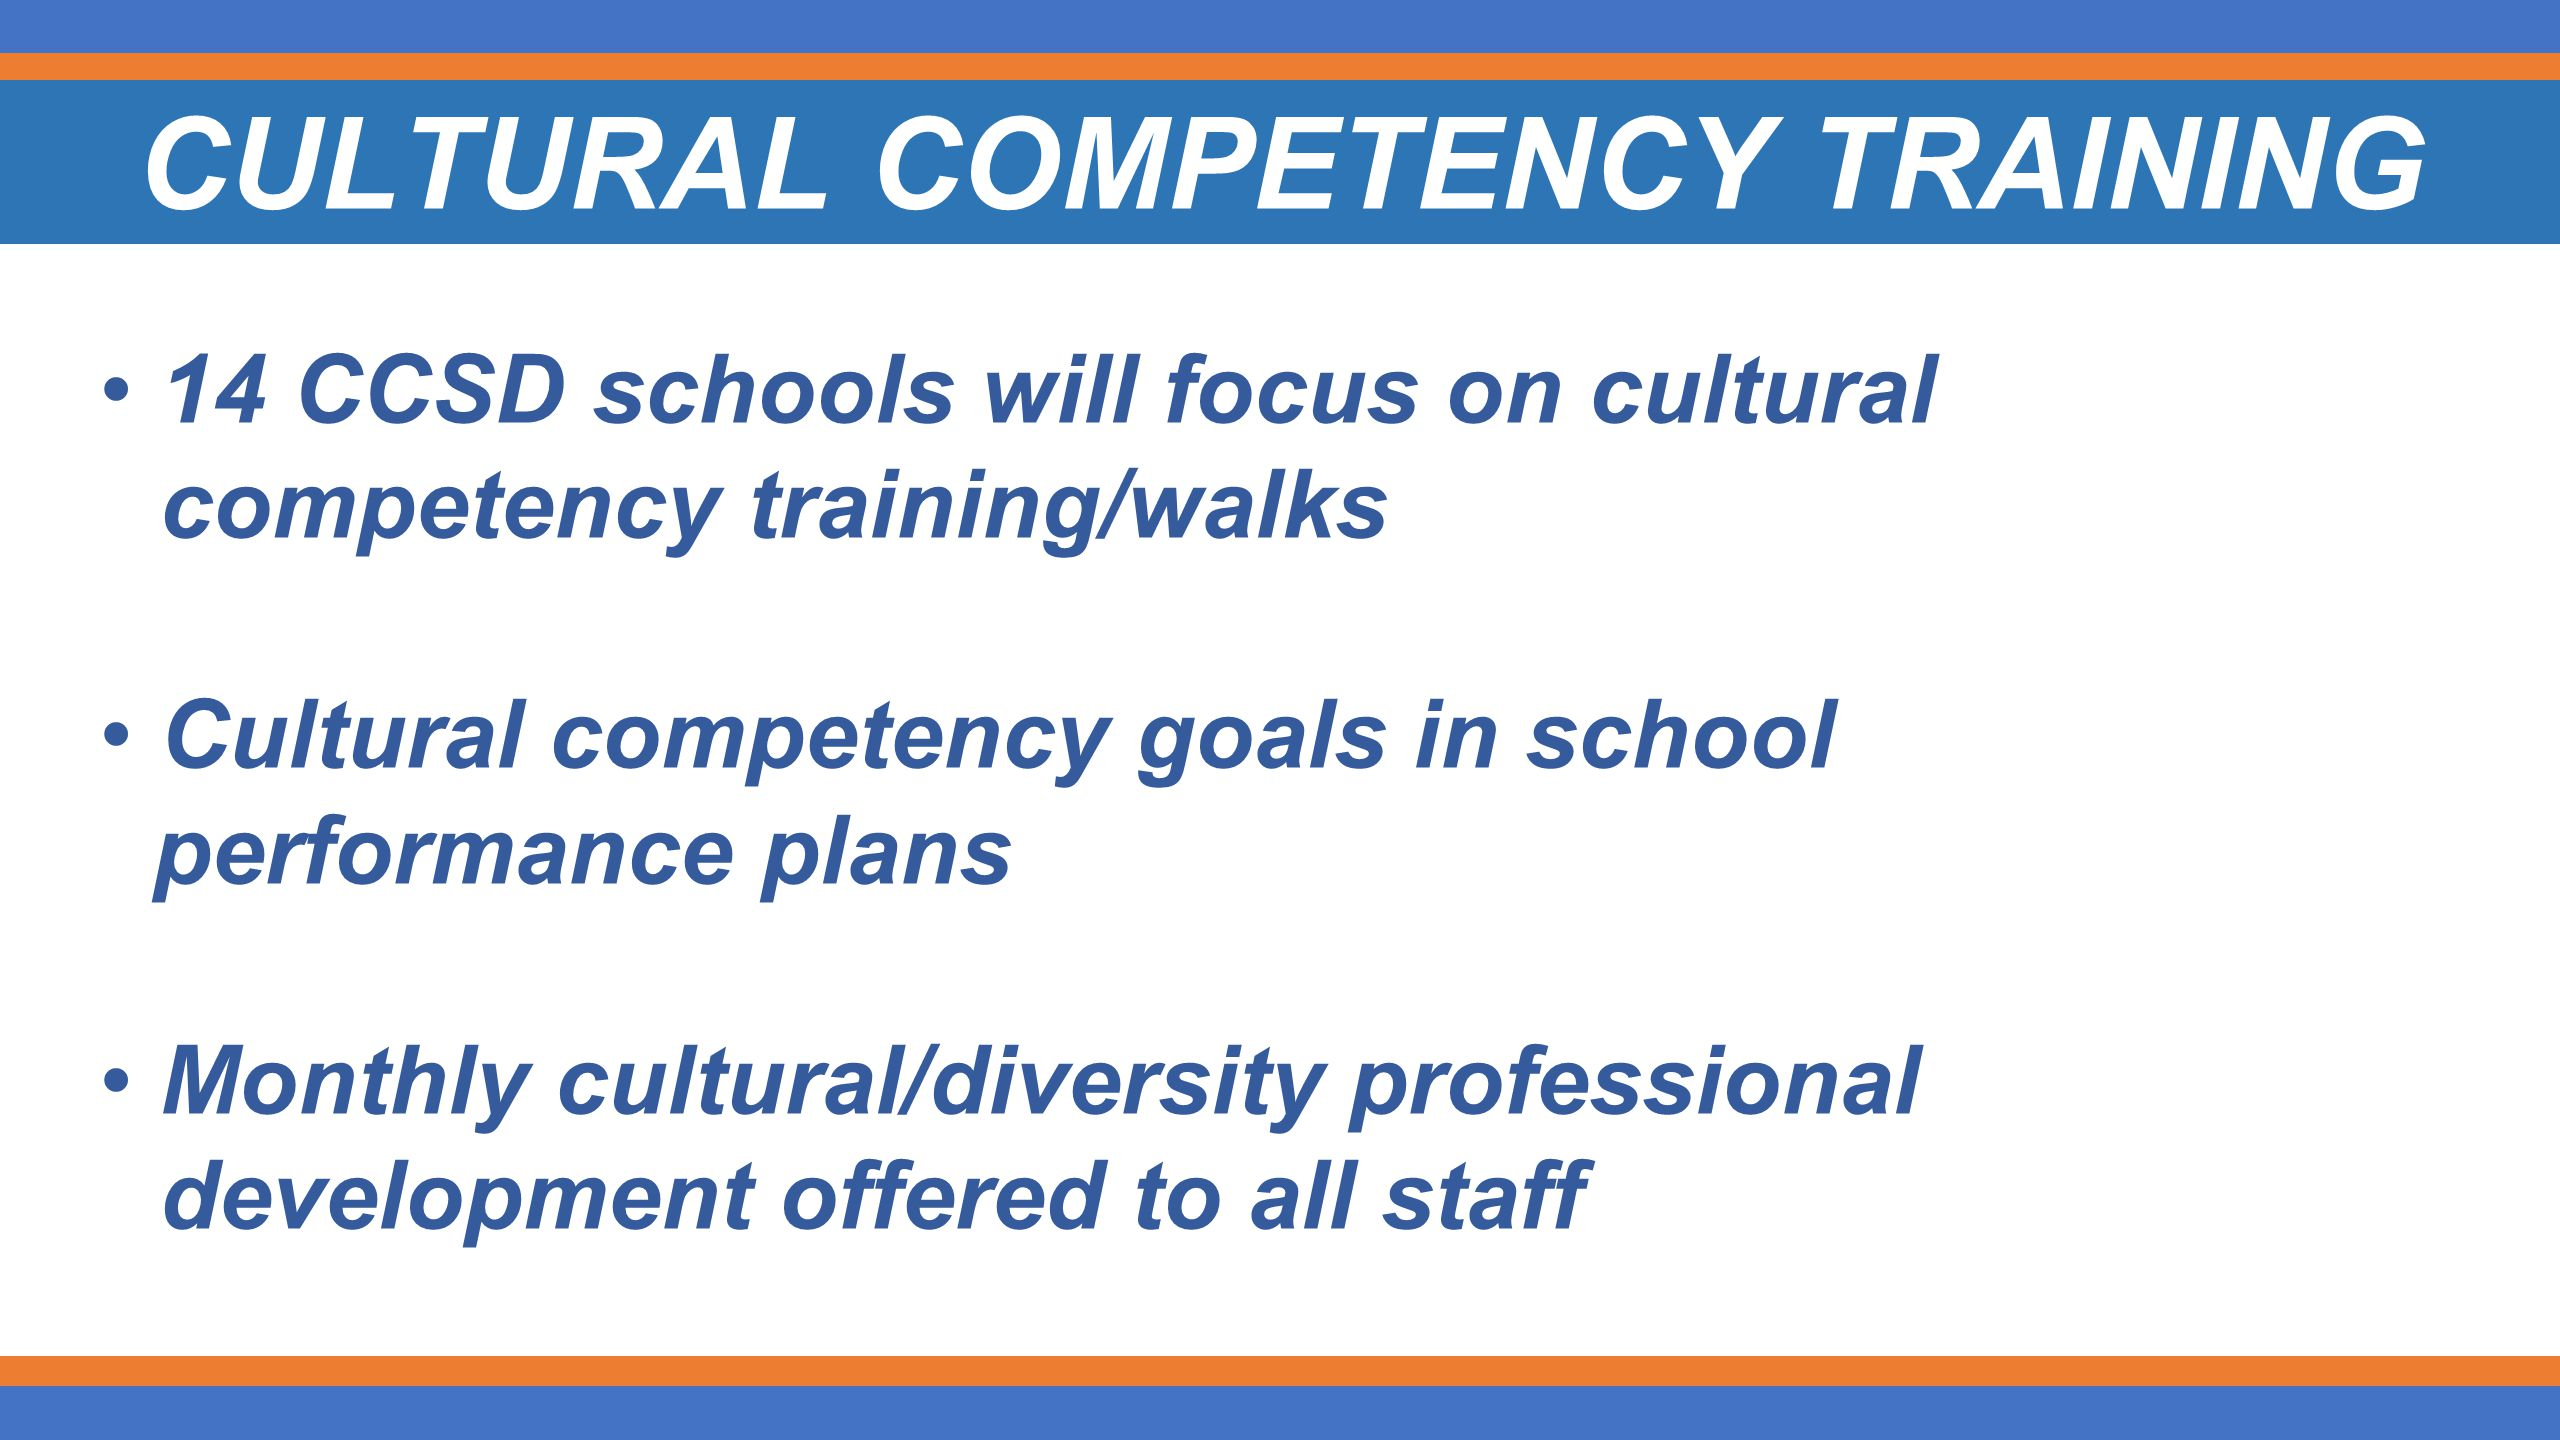 CULTURAL COMPETENCY TRAINING 14 CCSD schools will focus on cultural competency training/walks Cultural competency goals in school performance plans Monthly cultural/diversity professional development offered to all staff